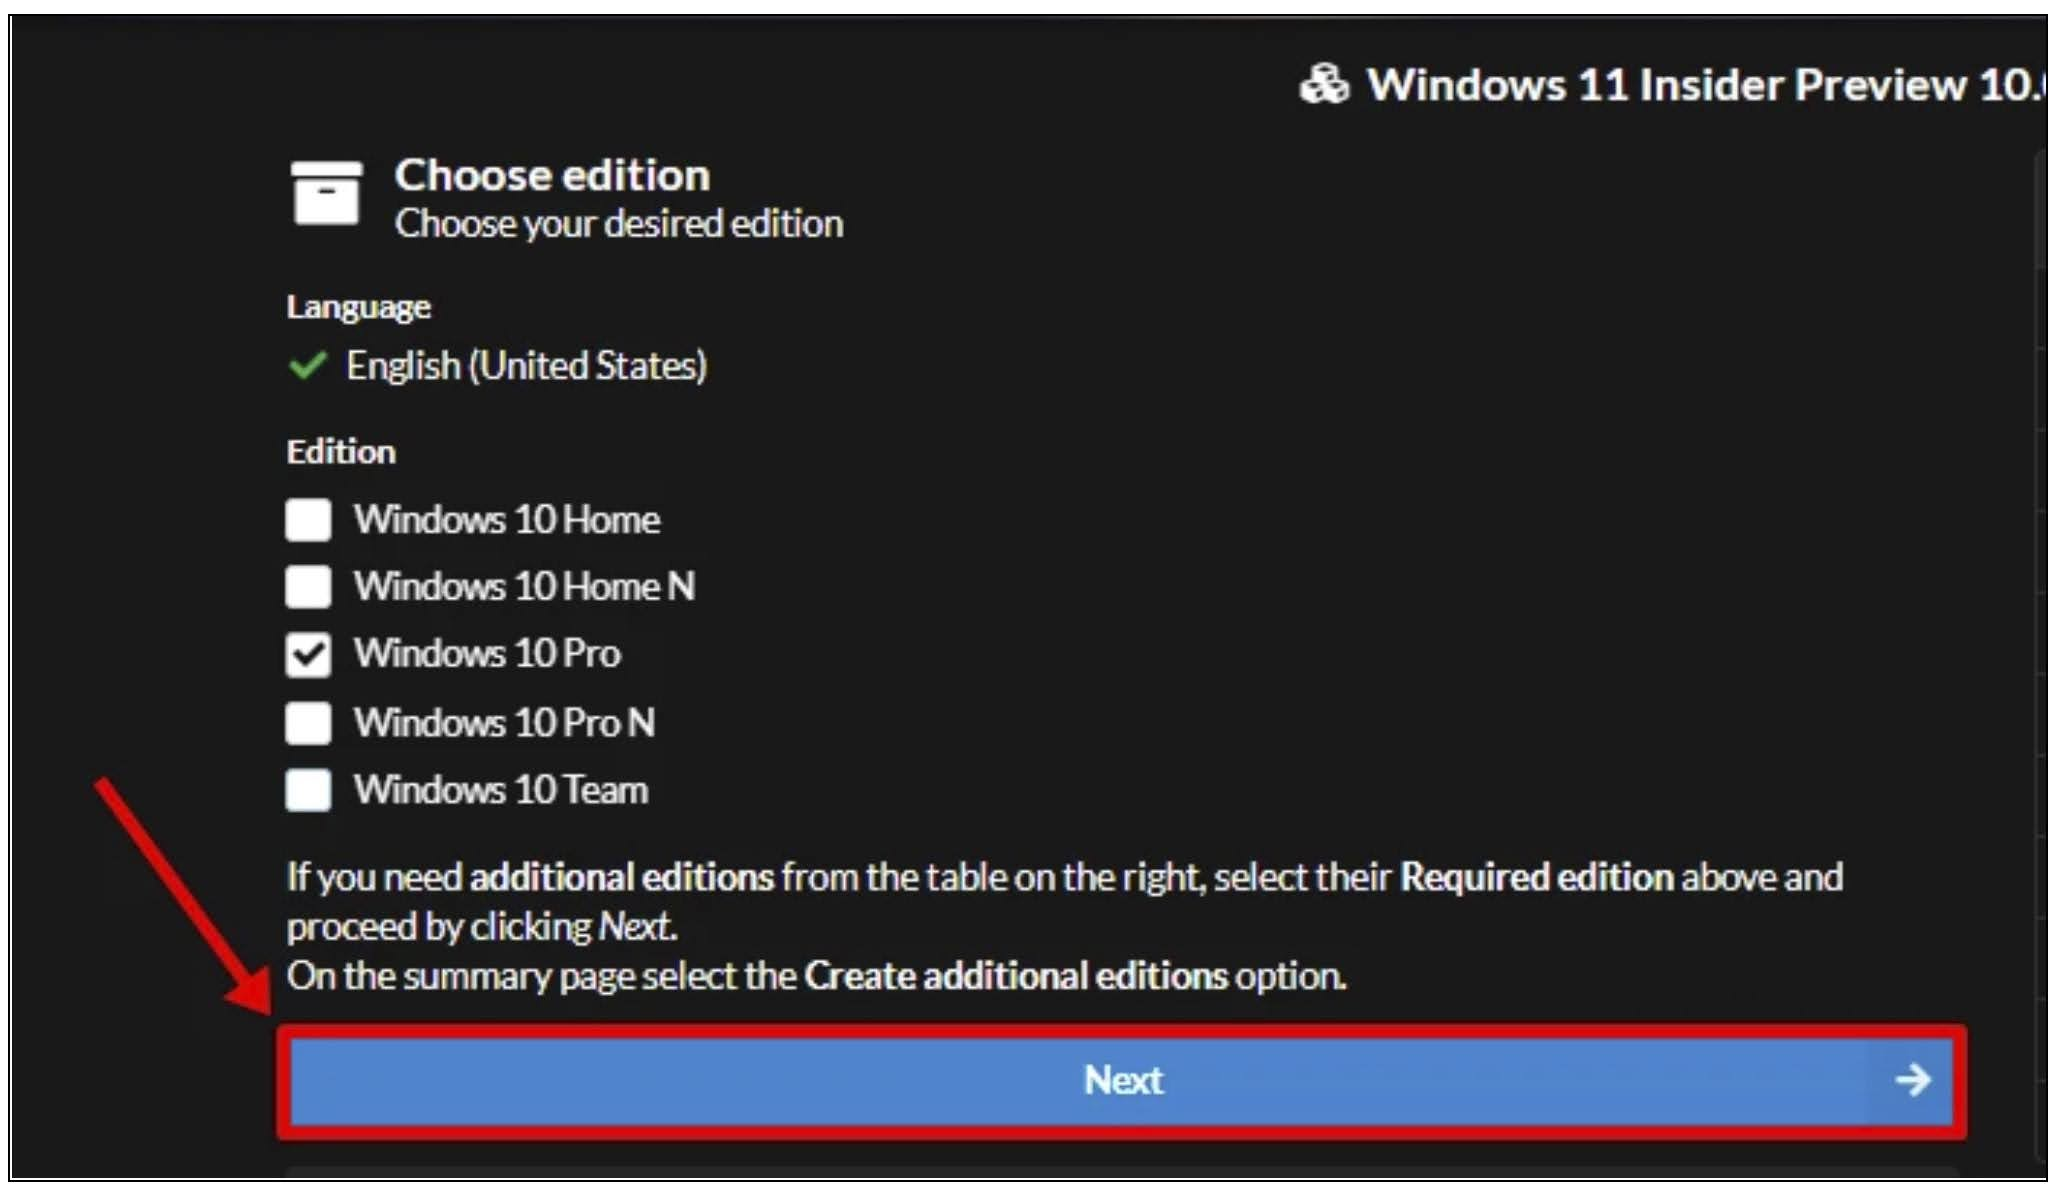 Select the Edition of Windows 11 Insider Preview that you like to download. We'll proceed to check for Windows 10 Pro edition only. Click on the Next button.